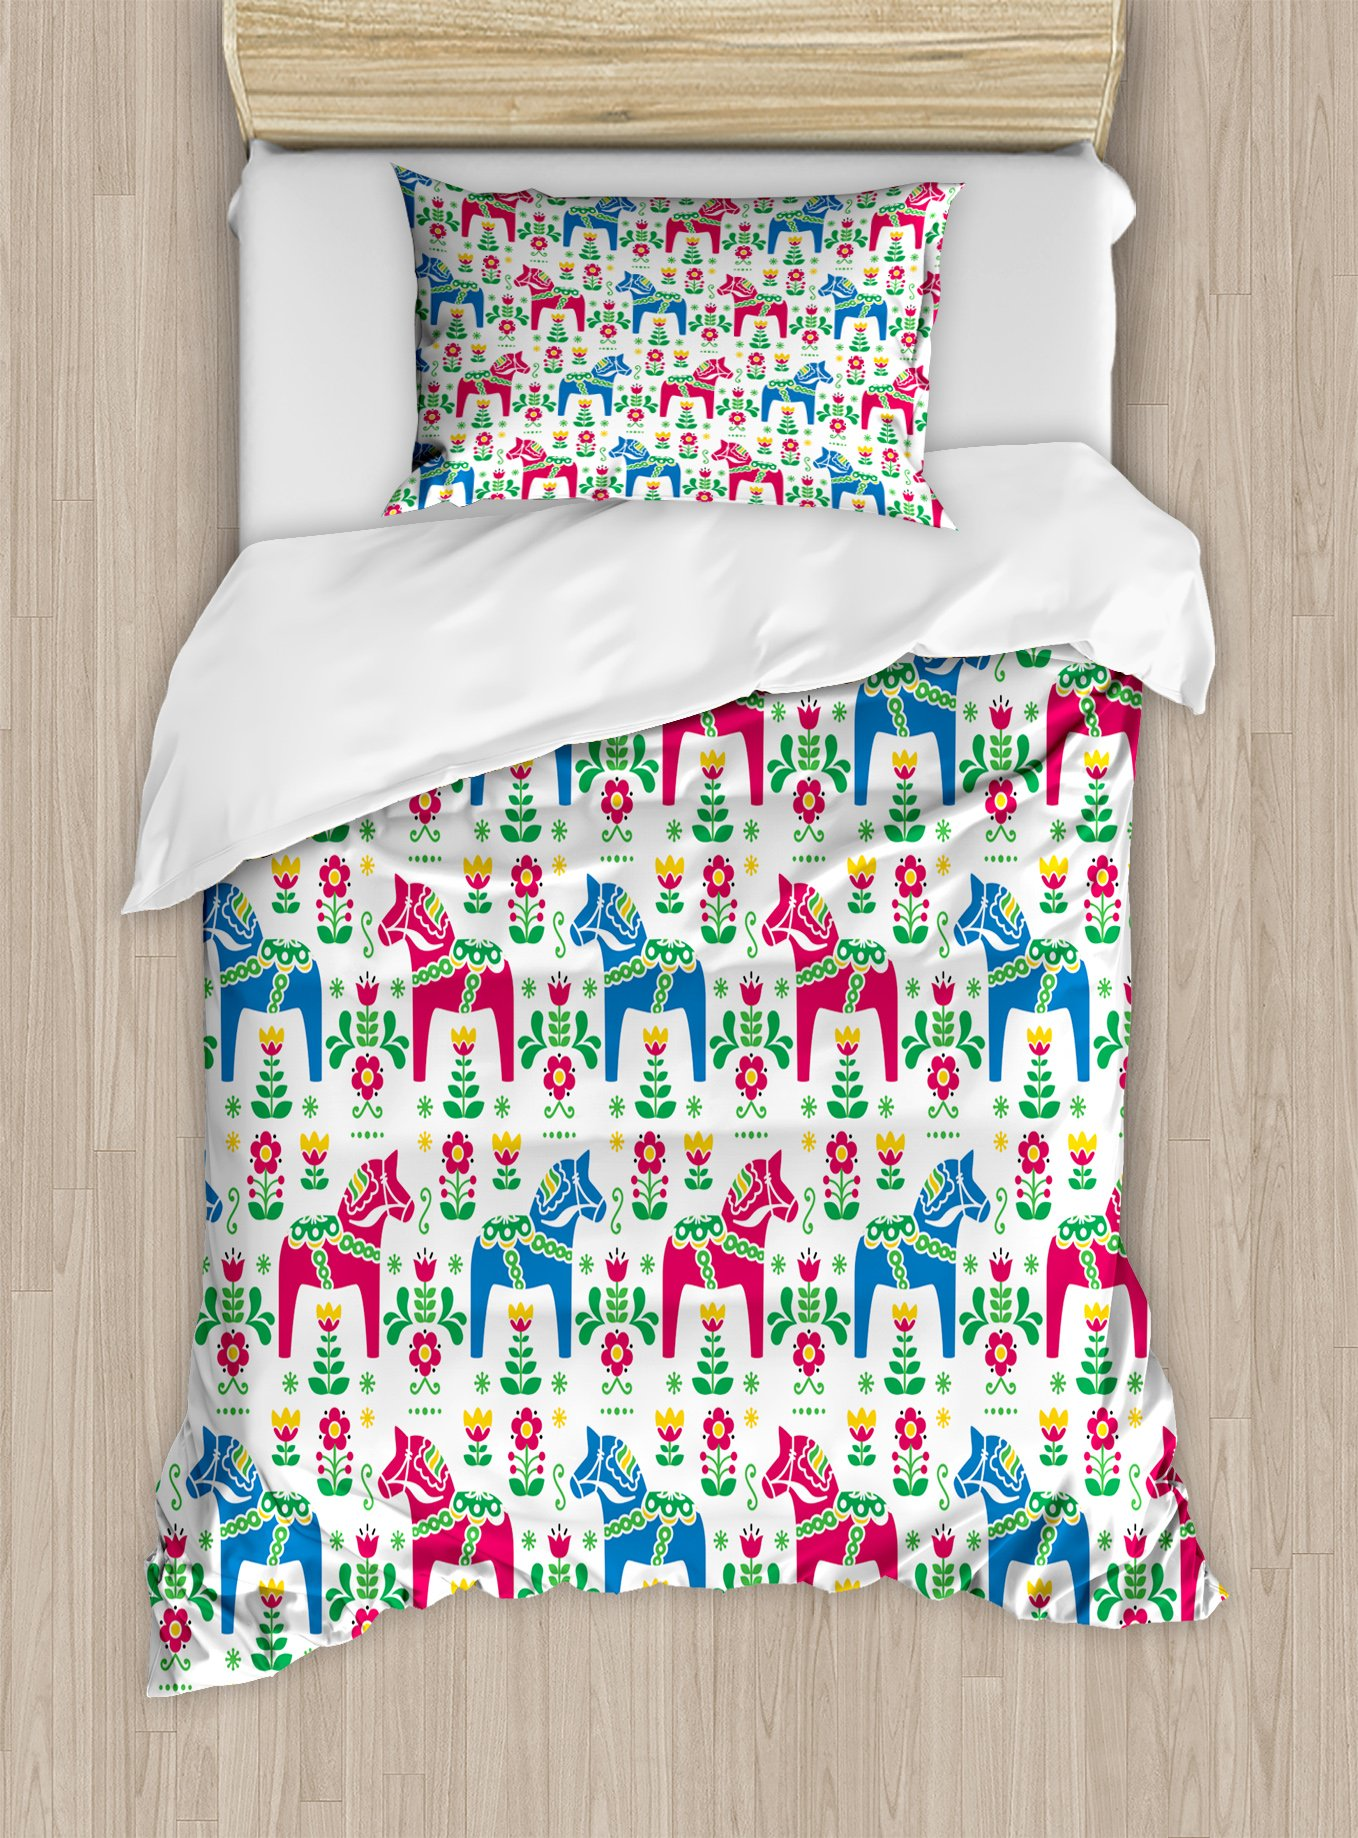 Ambesonne Horses Duvet Cover Set Twin Size, Classic Swedish Dalecarlian Coral Azure Blue Animals and Green Floral Arrangement, Decorative 2 Piece Bedding Set with 1 Pillow Sham, Multicolor